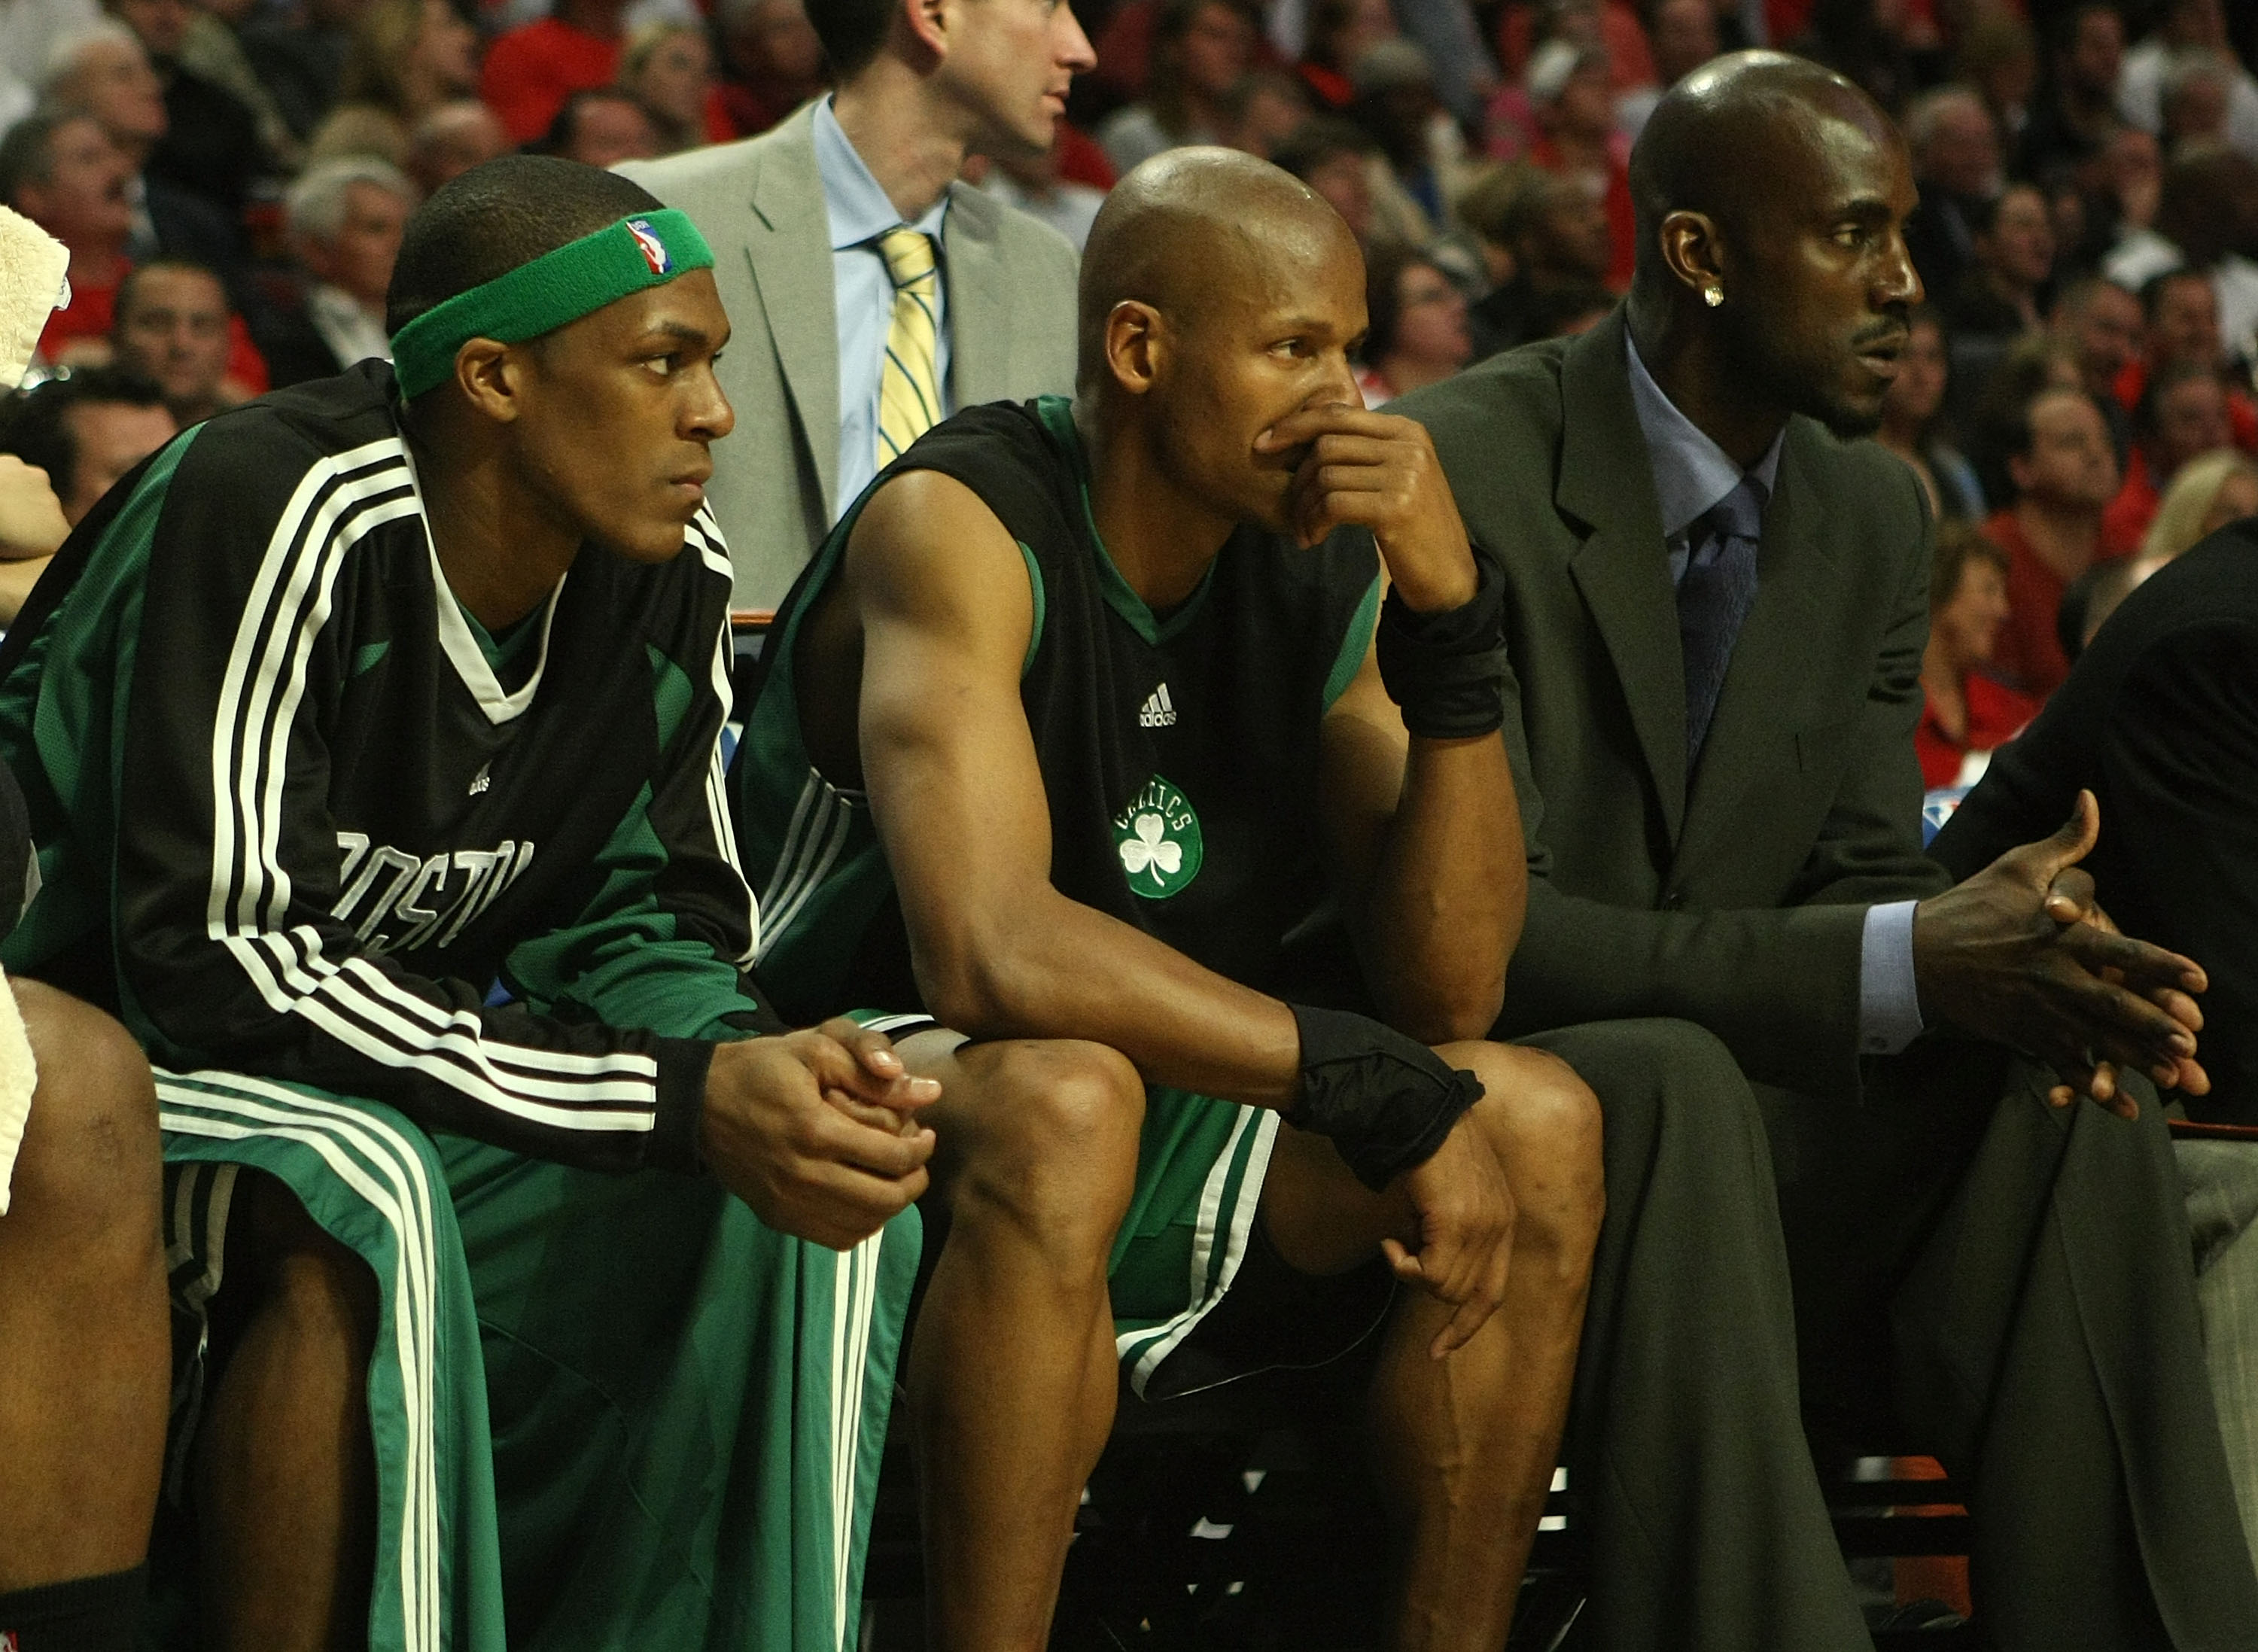 CHICAGO - APRIL 30: Rajon Rondo #9, Ray Allen #20 and Kevin Garnett of the Boston Celtics watch from the bench in Game Six of the Eastern Conference Quarterfinals during the 2009 NBA Playoffs against the Chicago Bulls at the United Center on April 30, 200